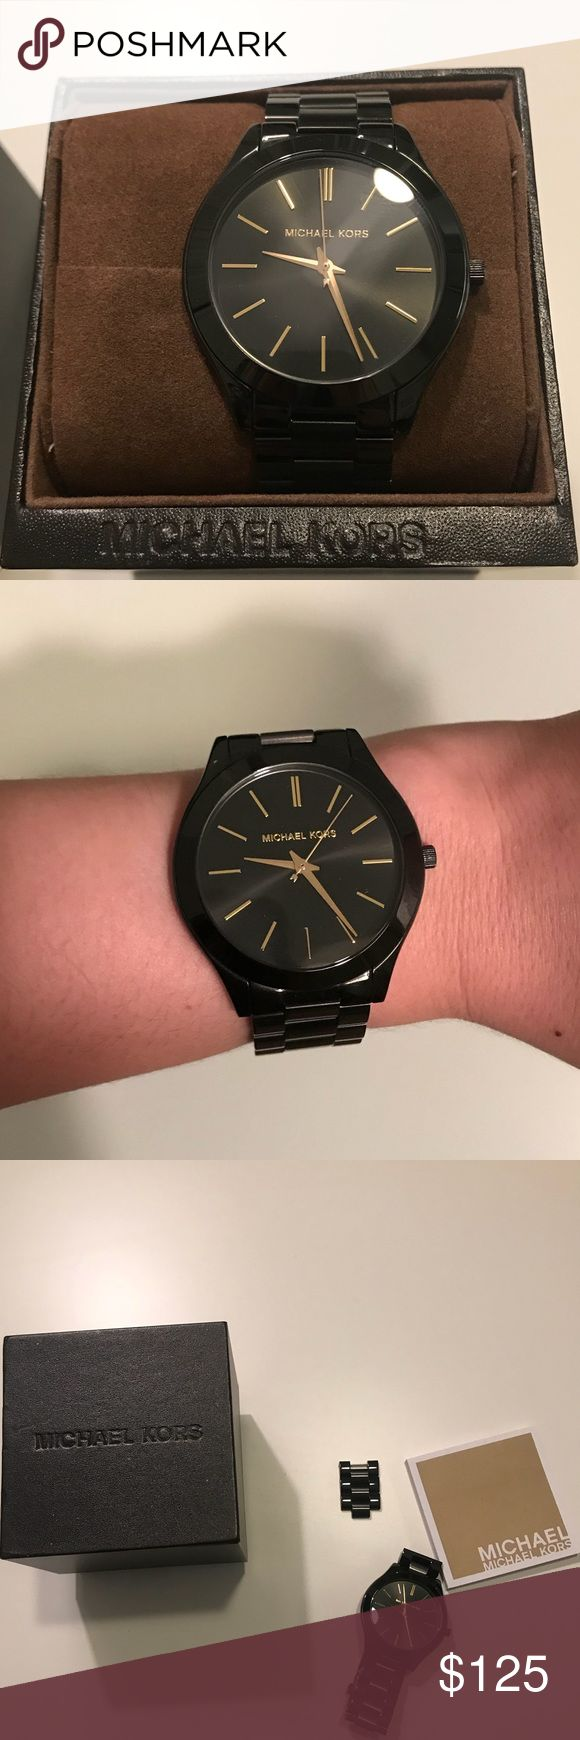 Michael Kors watch Gorgeous black Michael Kors watch with gold details. In great used condition. Battery is currently still working. I did remove a few links for my small wrist, but I will include the extra links that were removed. They can easily be added back. I will also include booklet and box. No trades please. Reasonable offers welcome! Michael Kors Accessories Watches